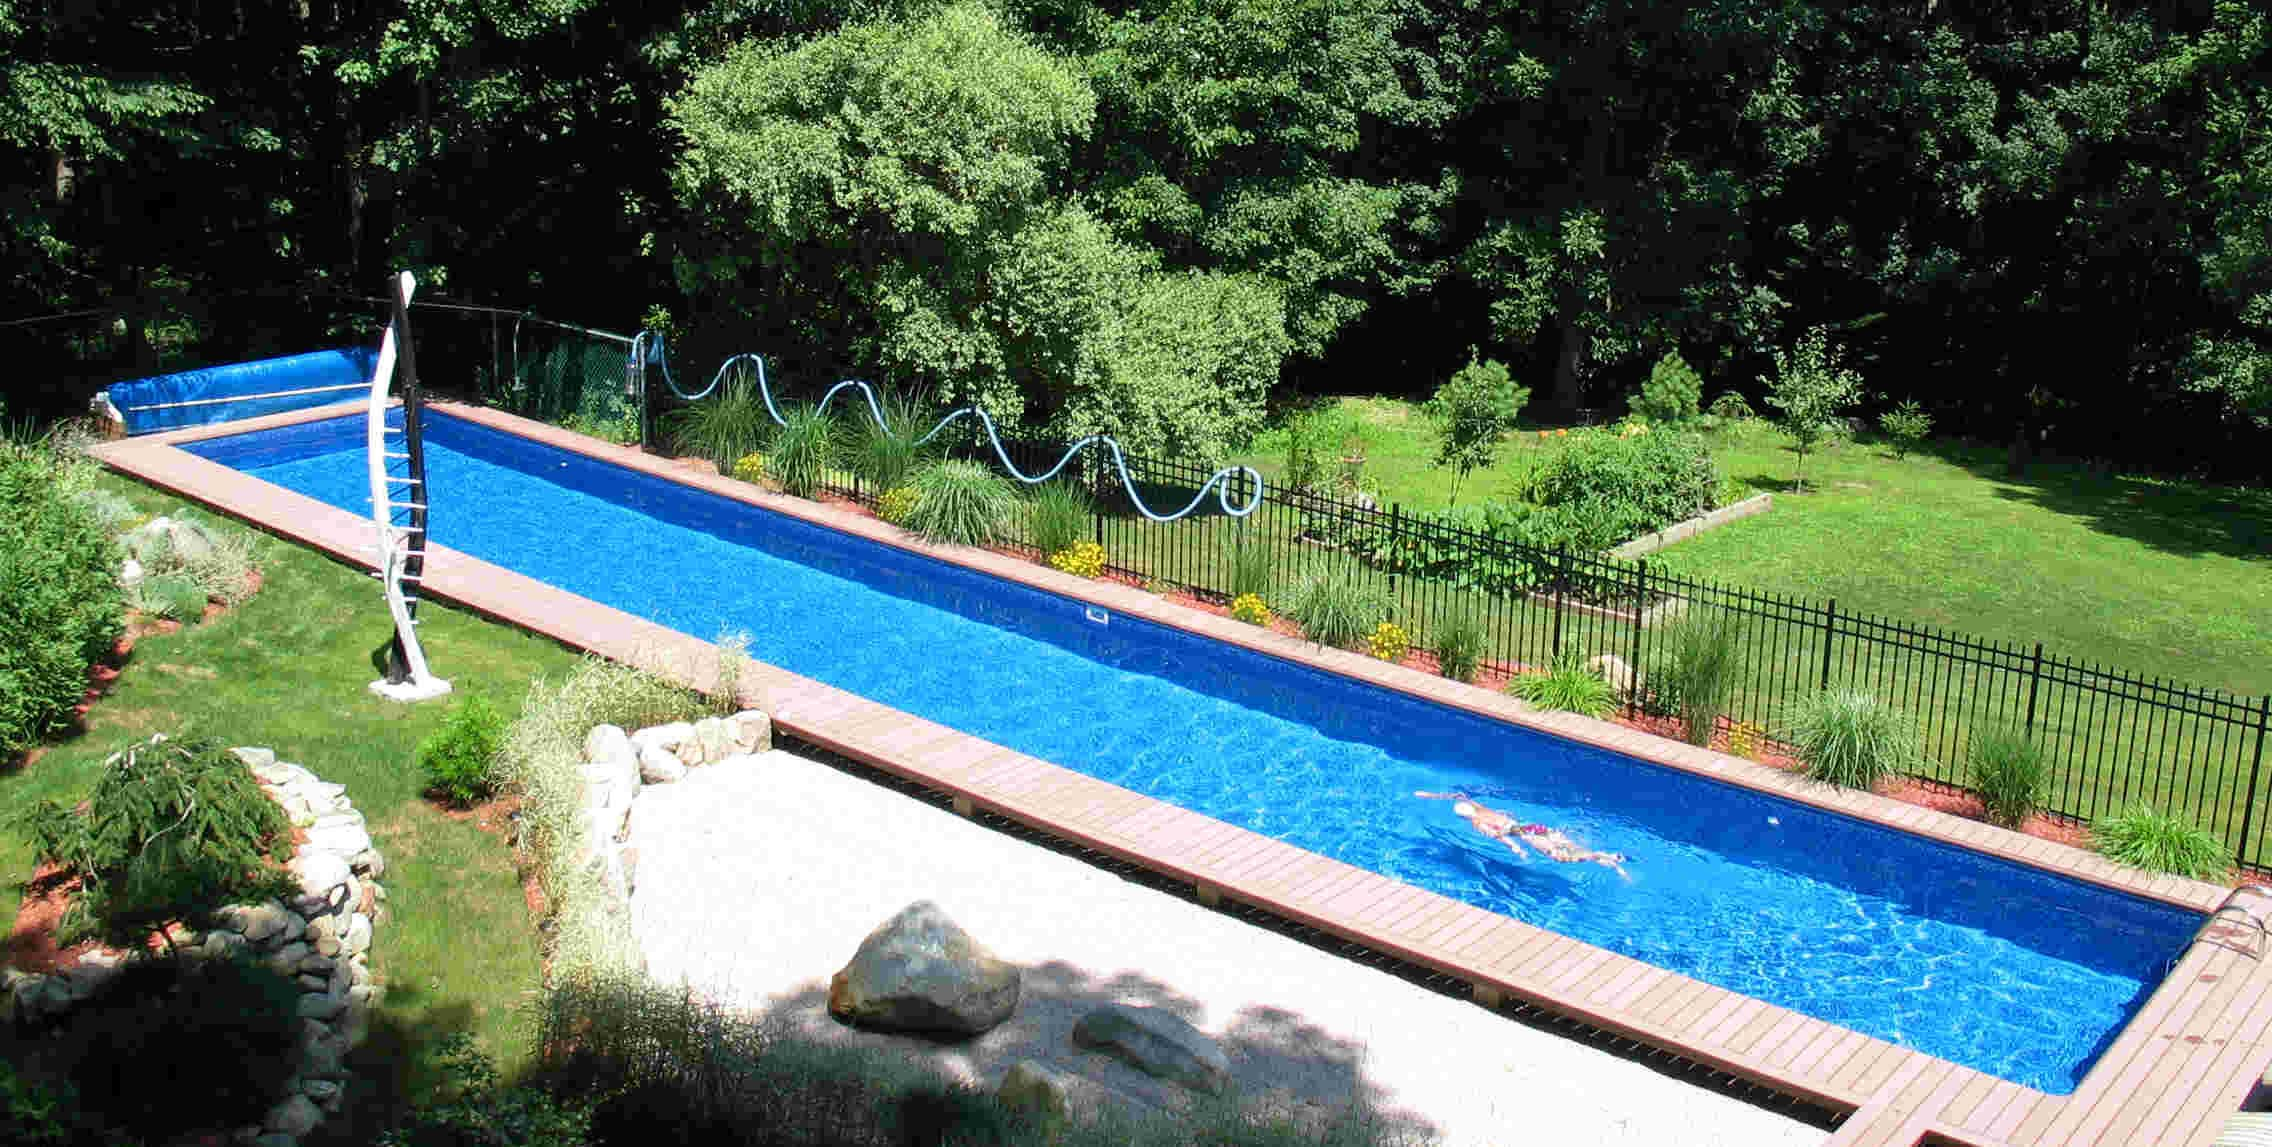 Diy inground swimming pool backyard design ideas diy inground swimming pool solutioingenieria Image collections